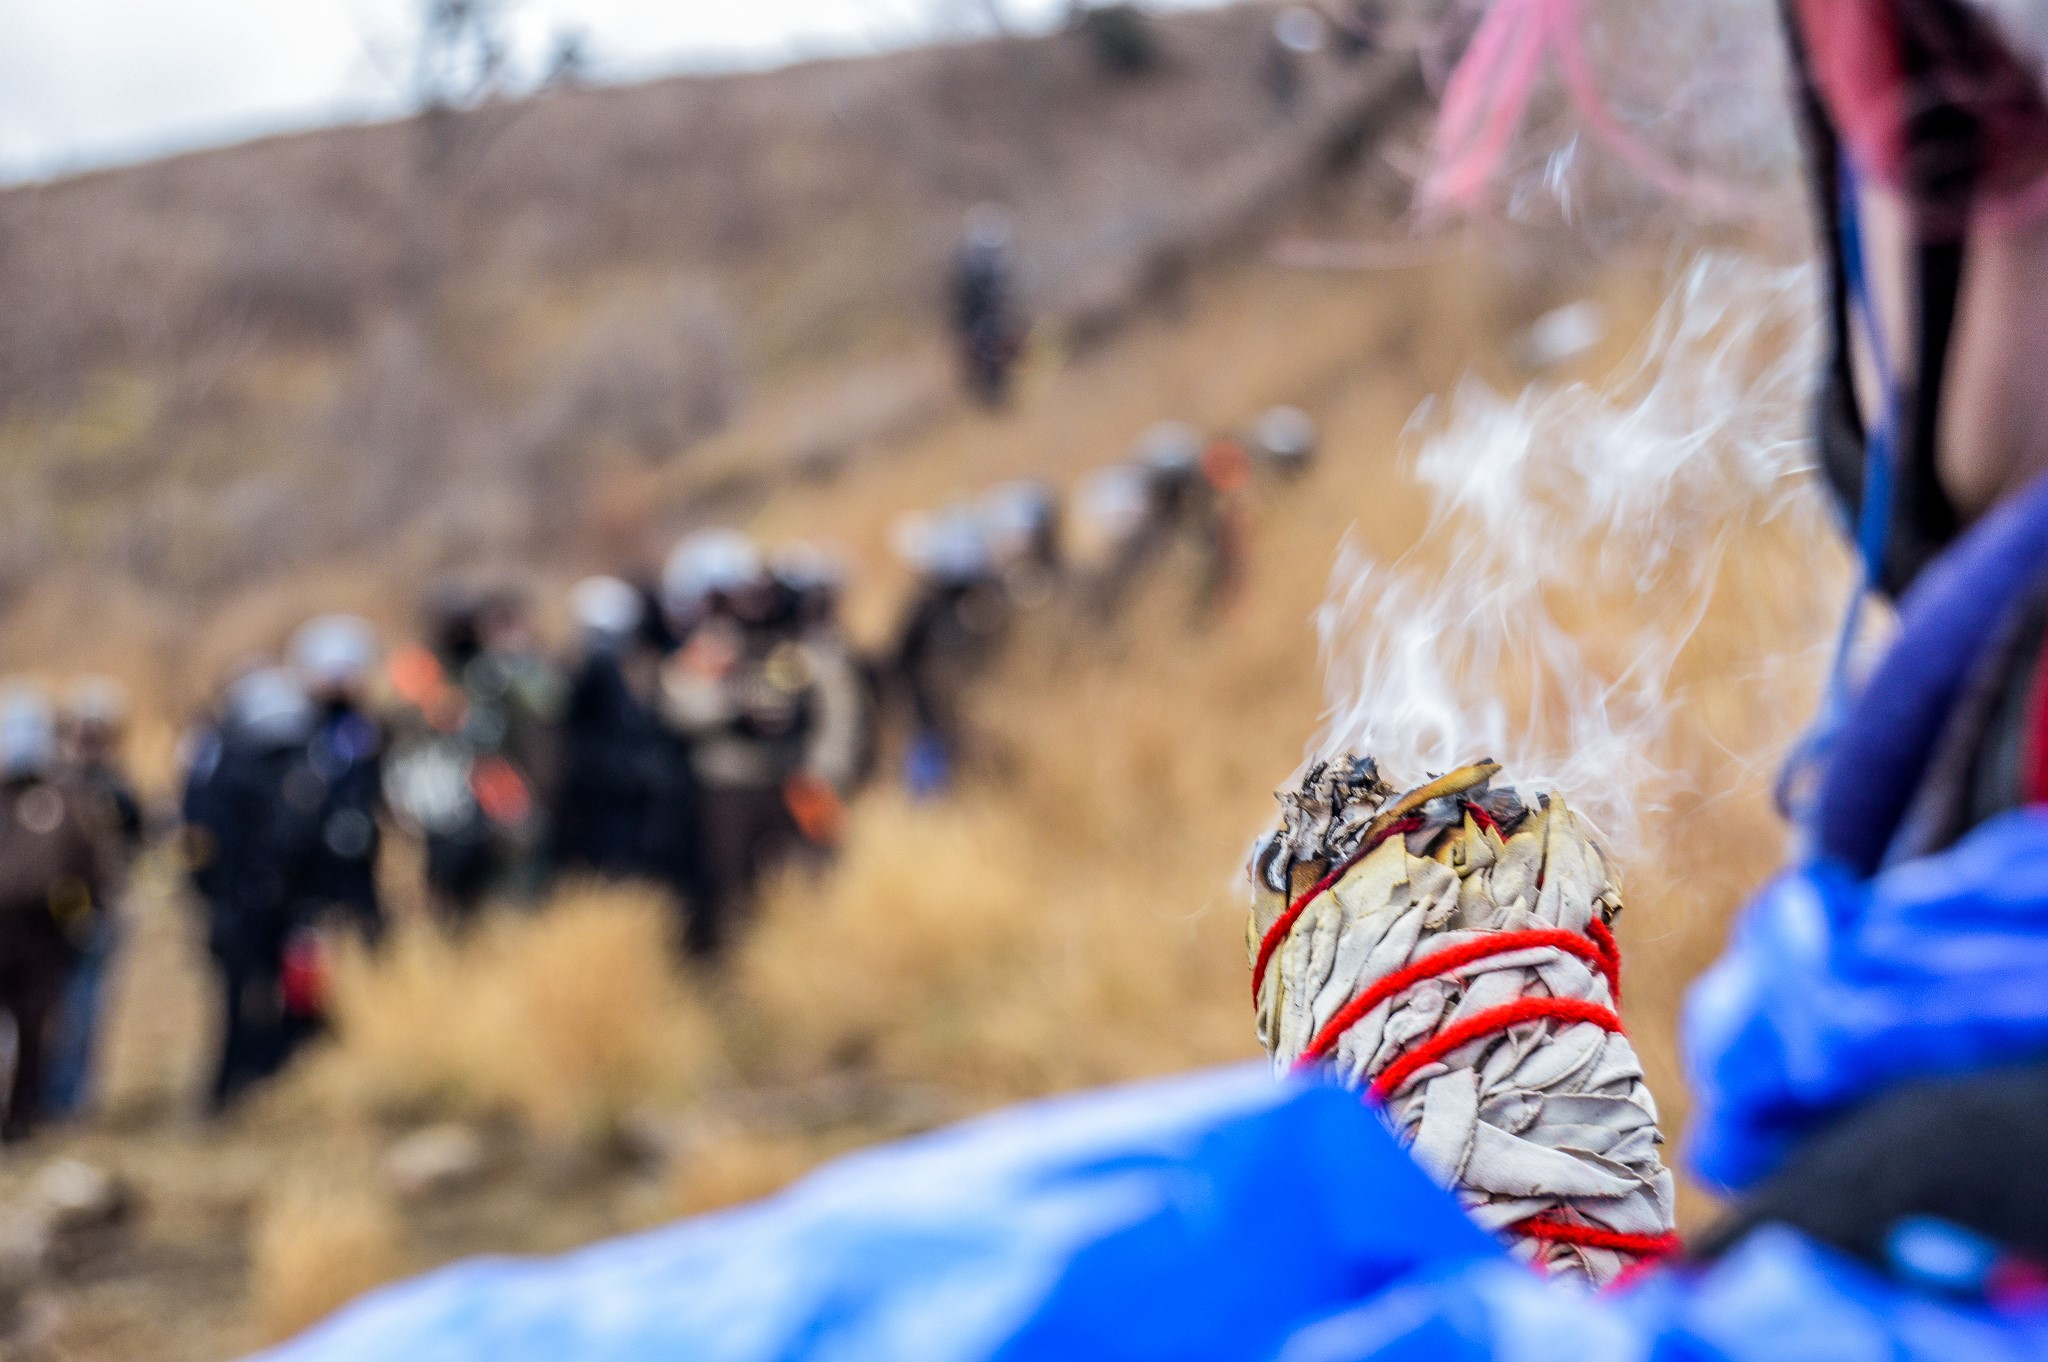 Kelly Hayes: My whole heart is with the #NoDAPL water protectors